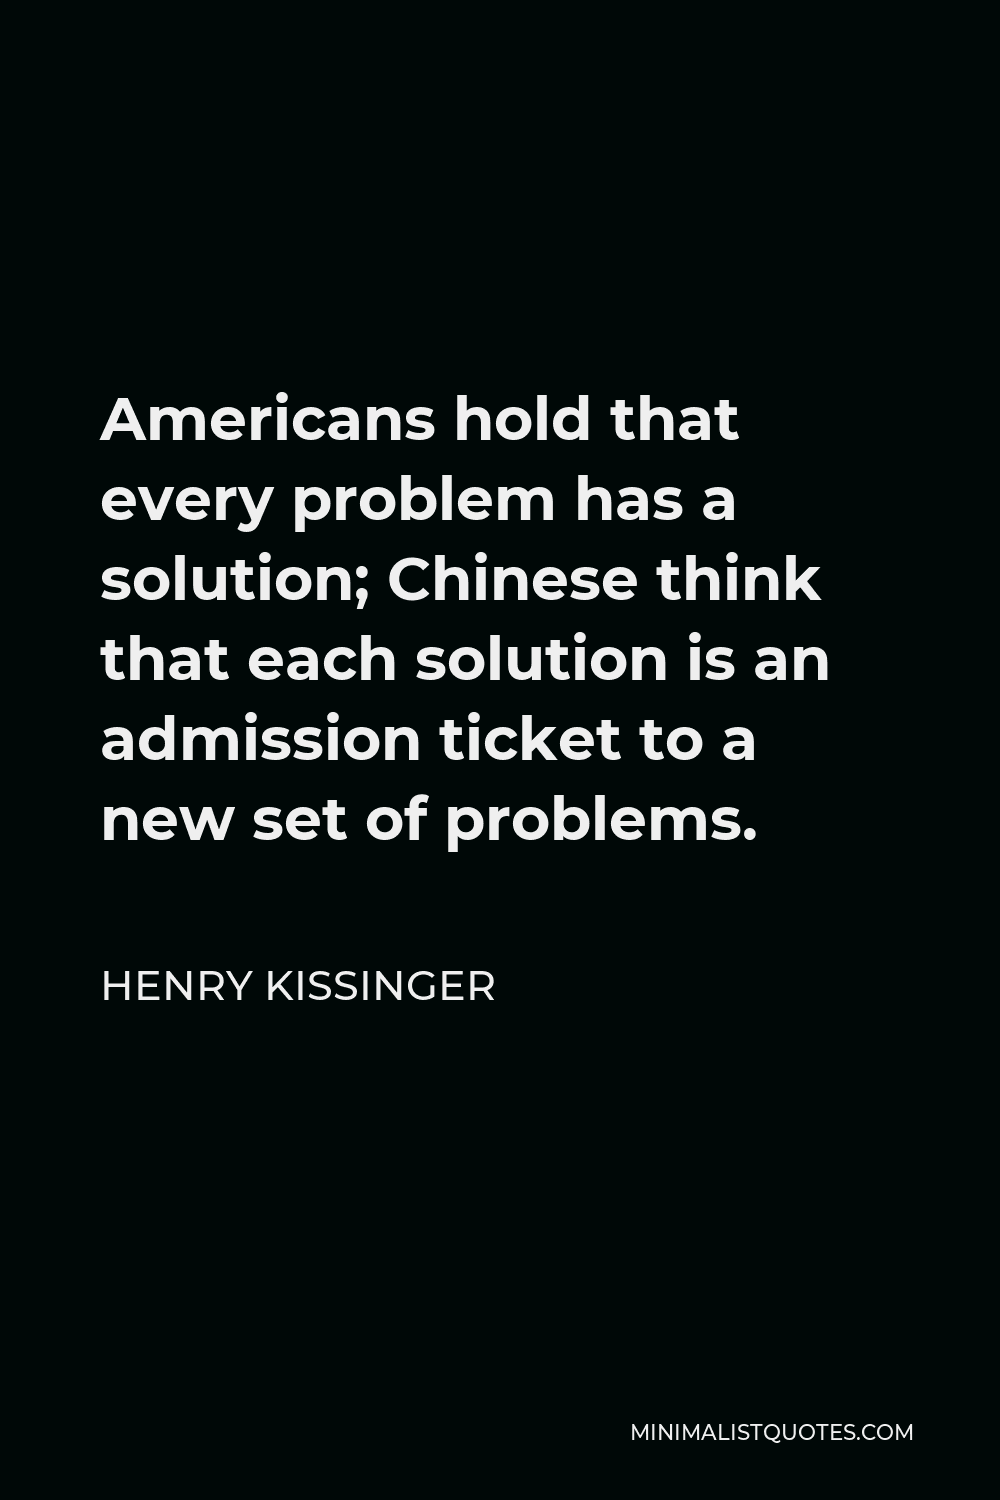 Henry Kissinger Quote - Americans hold that every problem has a solution; Chinese think that each solution is an admission ticket to a new set of problems.